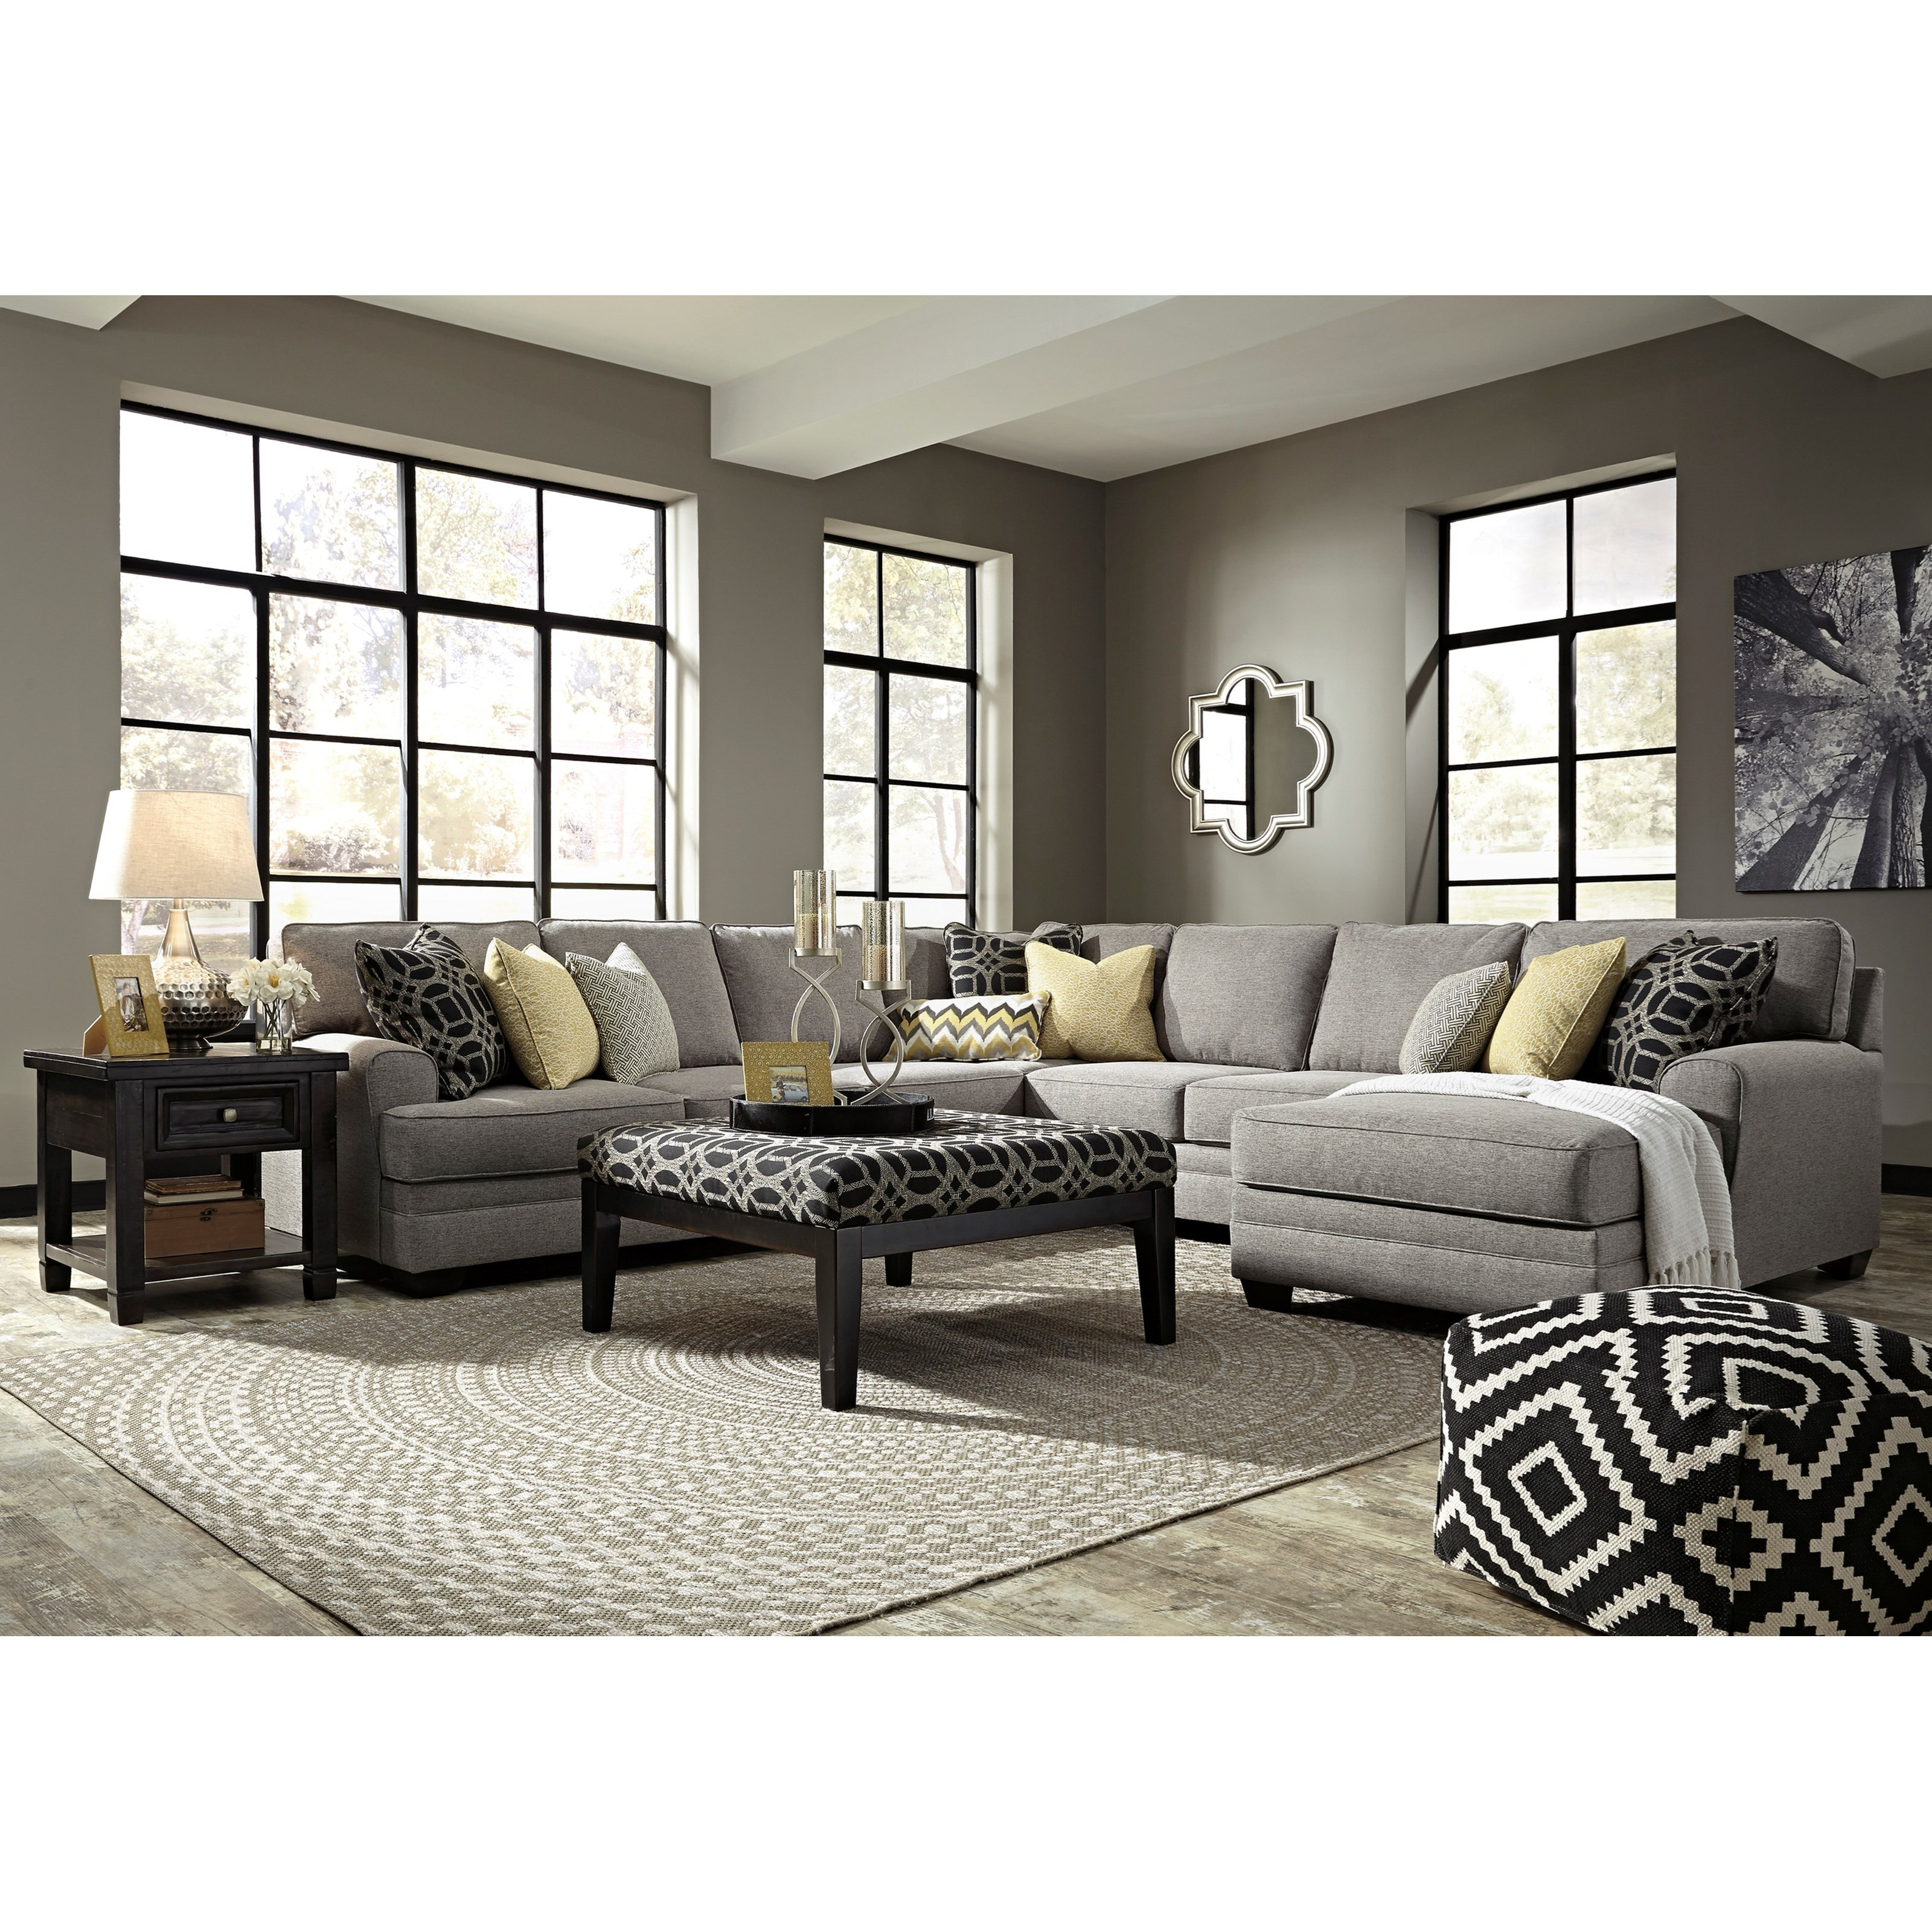 Benchcraft Cresson Stationary Living Room Group - Item Number: 54907 Living Room Group 7